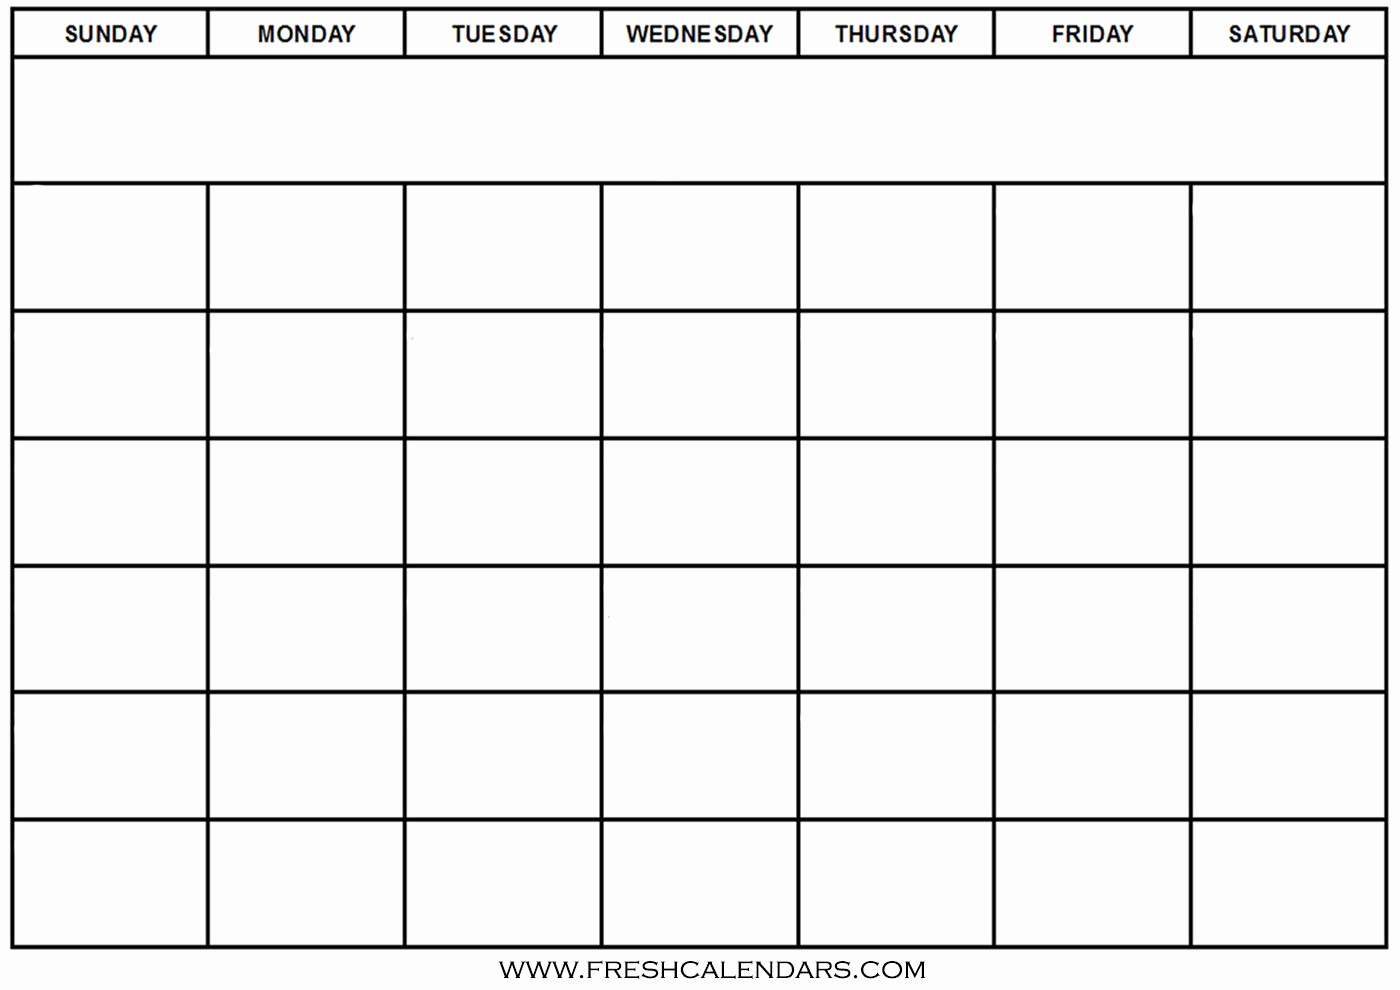 Create Calendar In Word New Blank Calendar Wonderfully Printable 2019 Templates